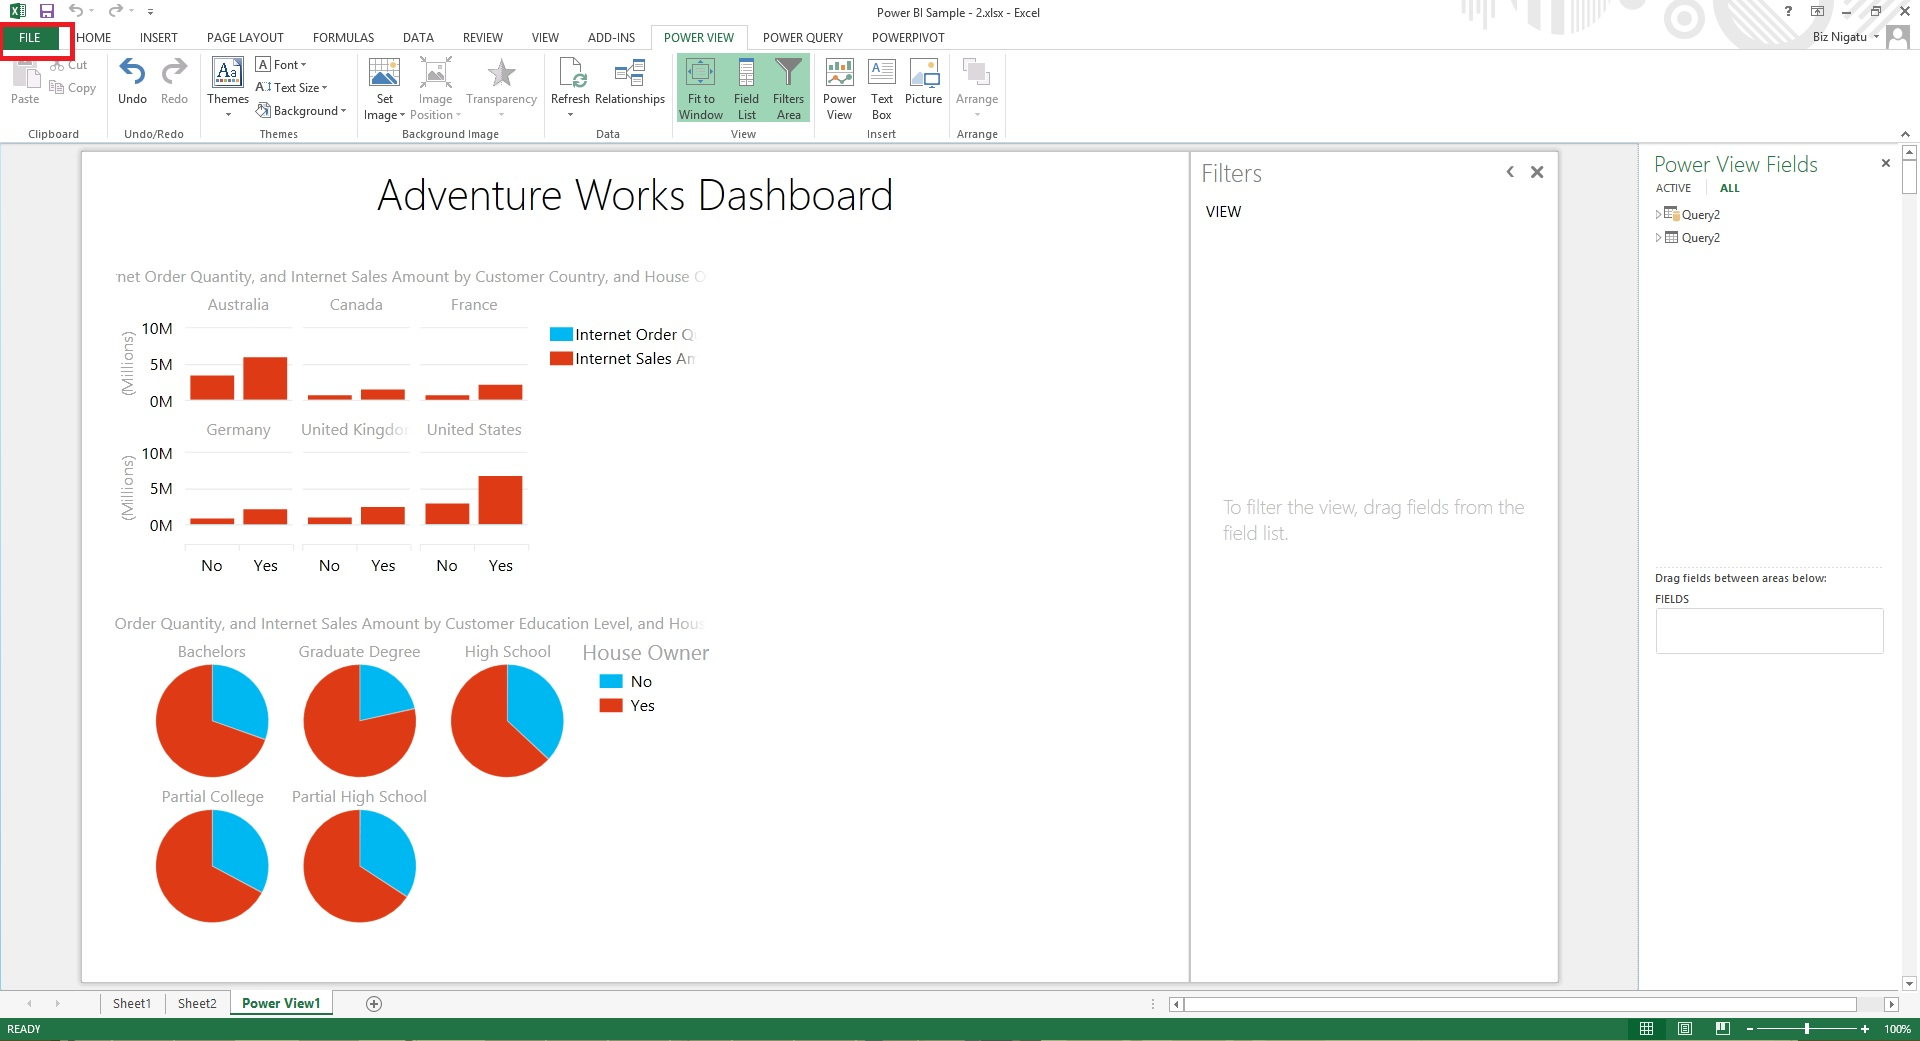 upload workbook to Power BI site